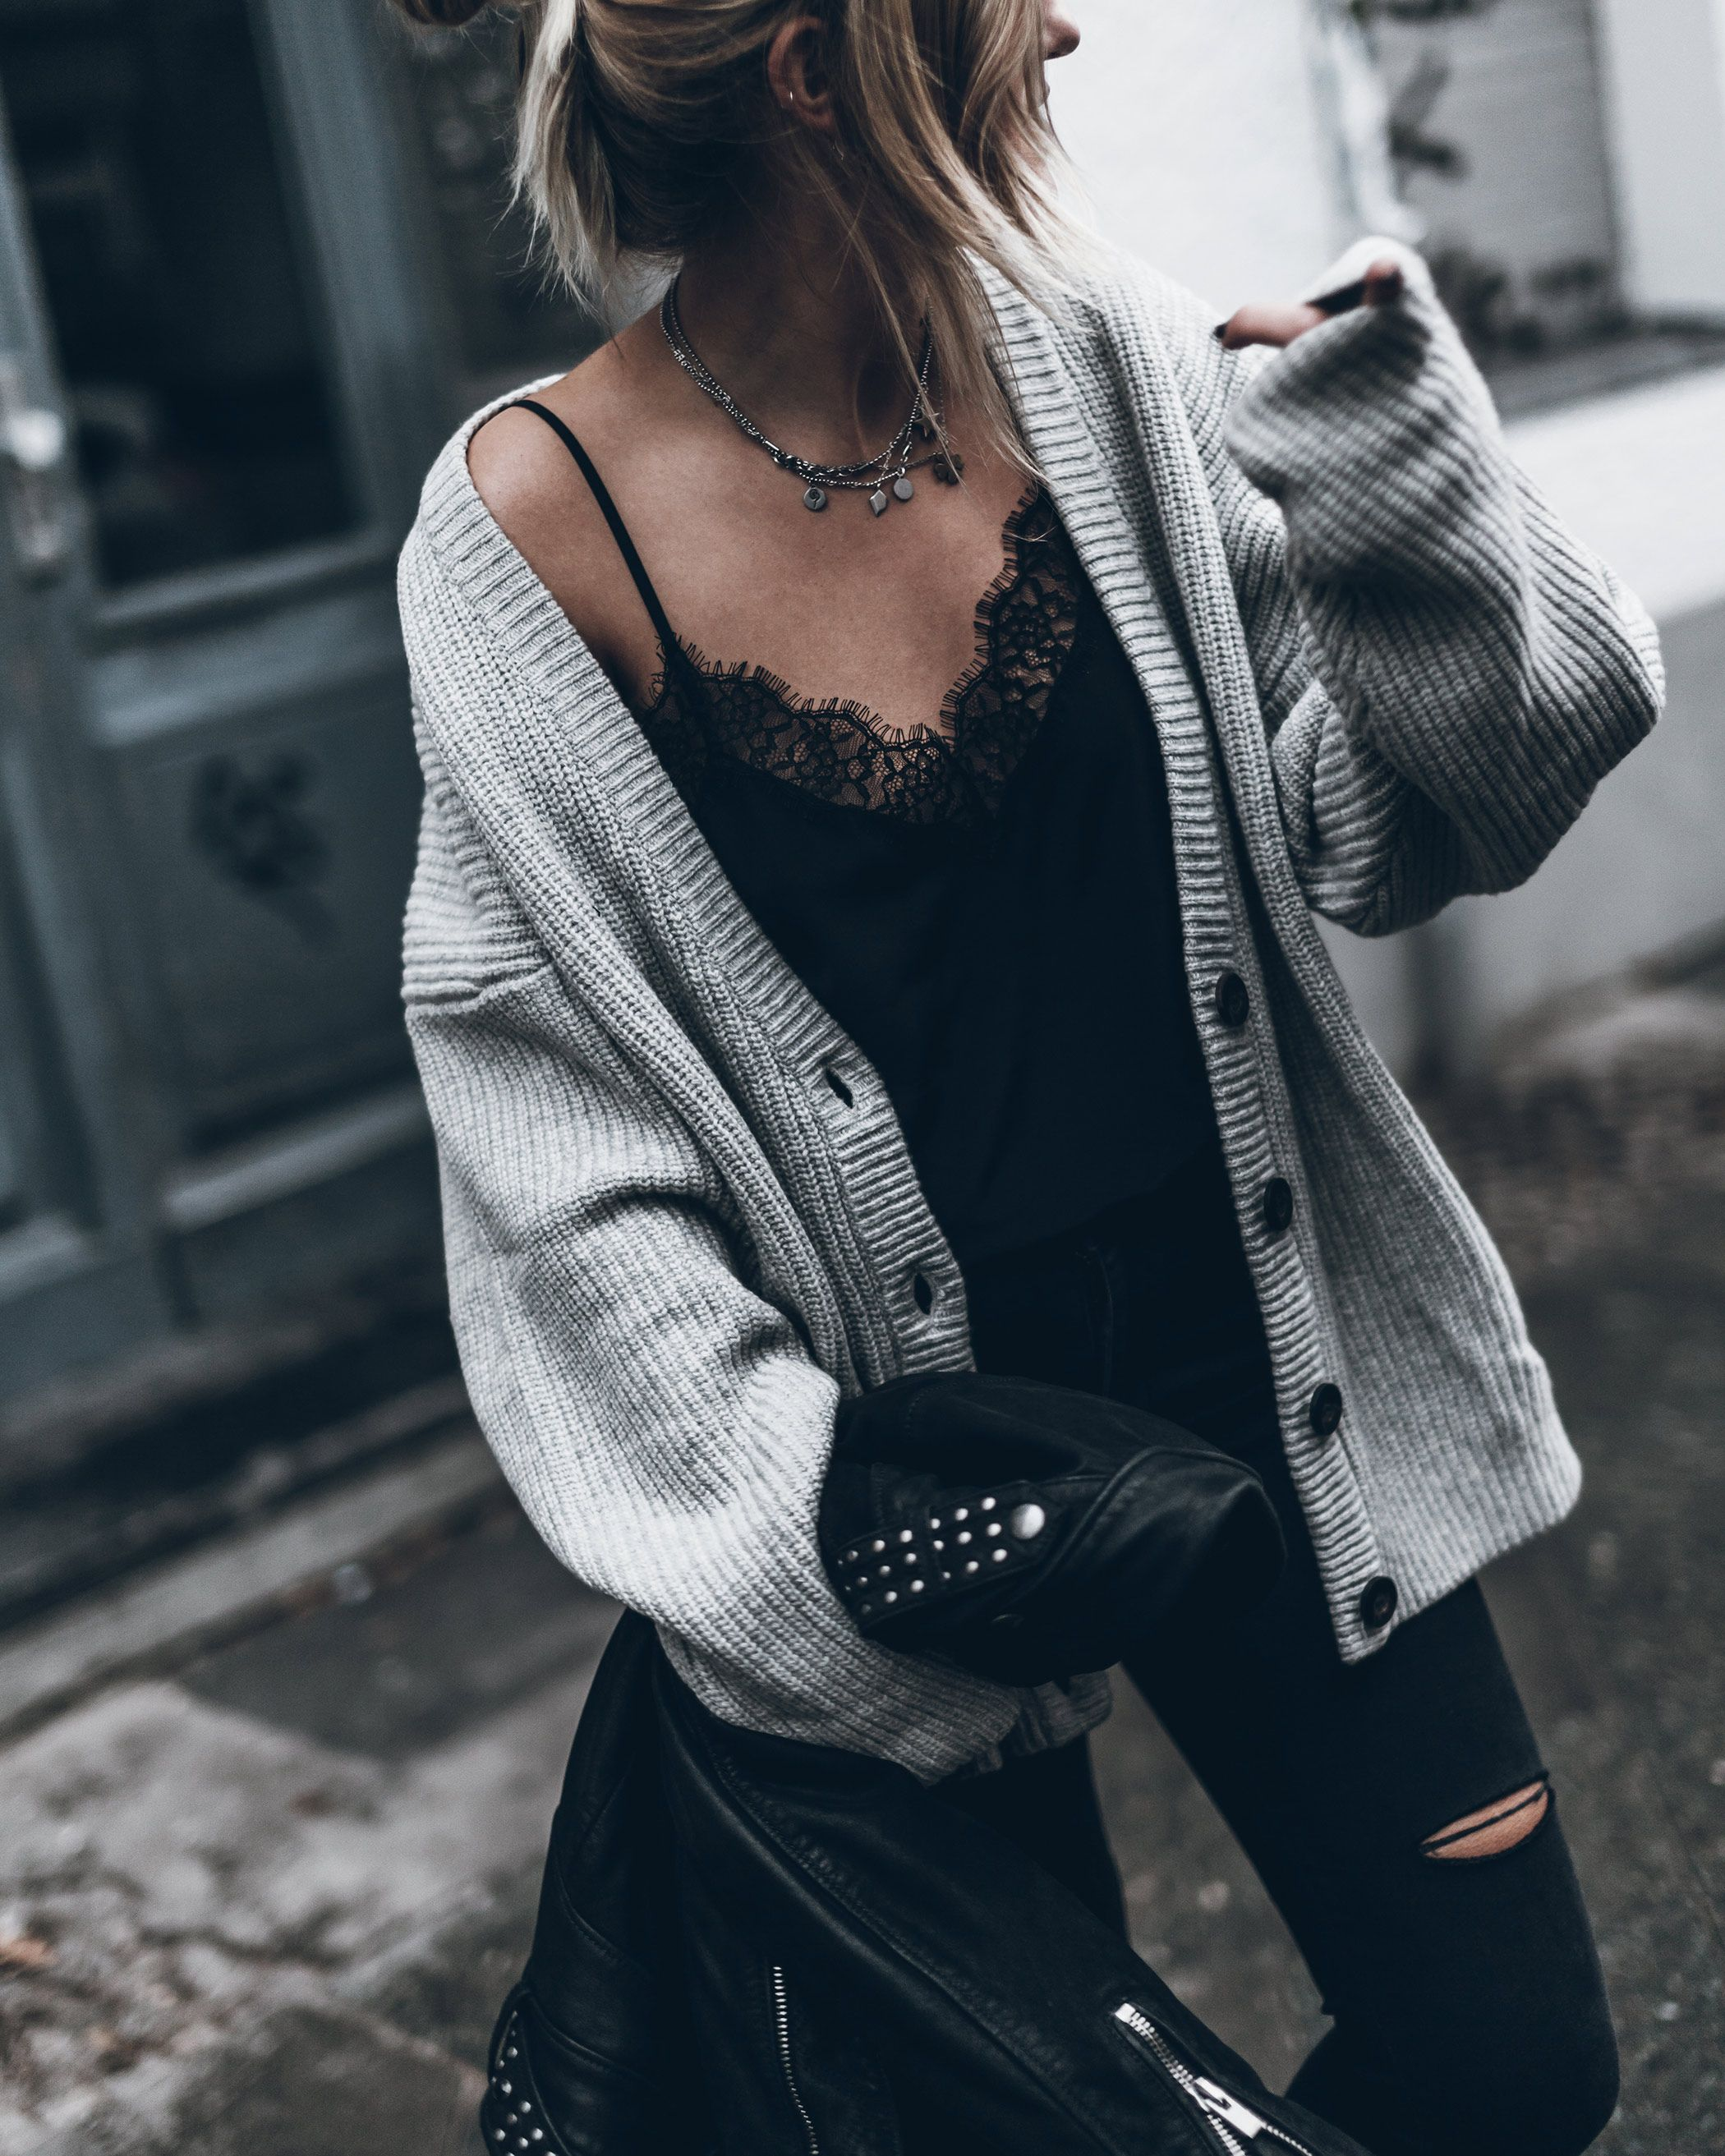 The Comfy Look: Lace Cami Top with Grey Cardigan Similar Style Available at SiiZU